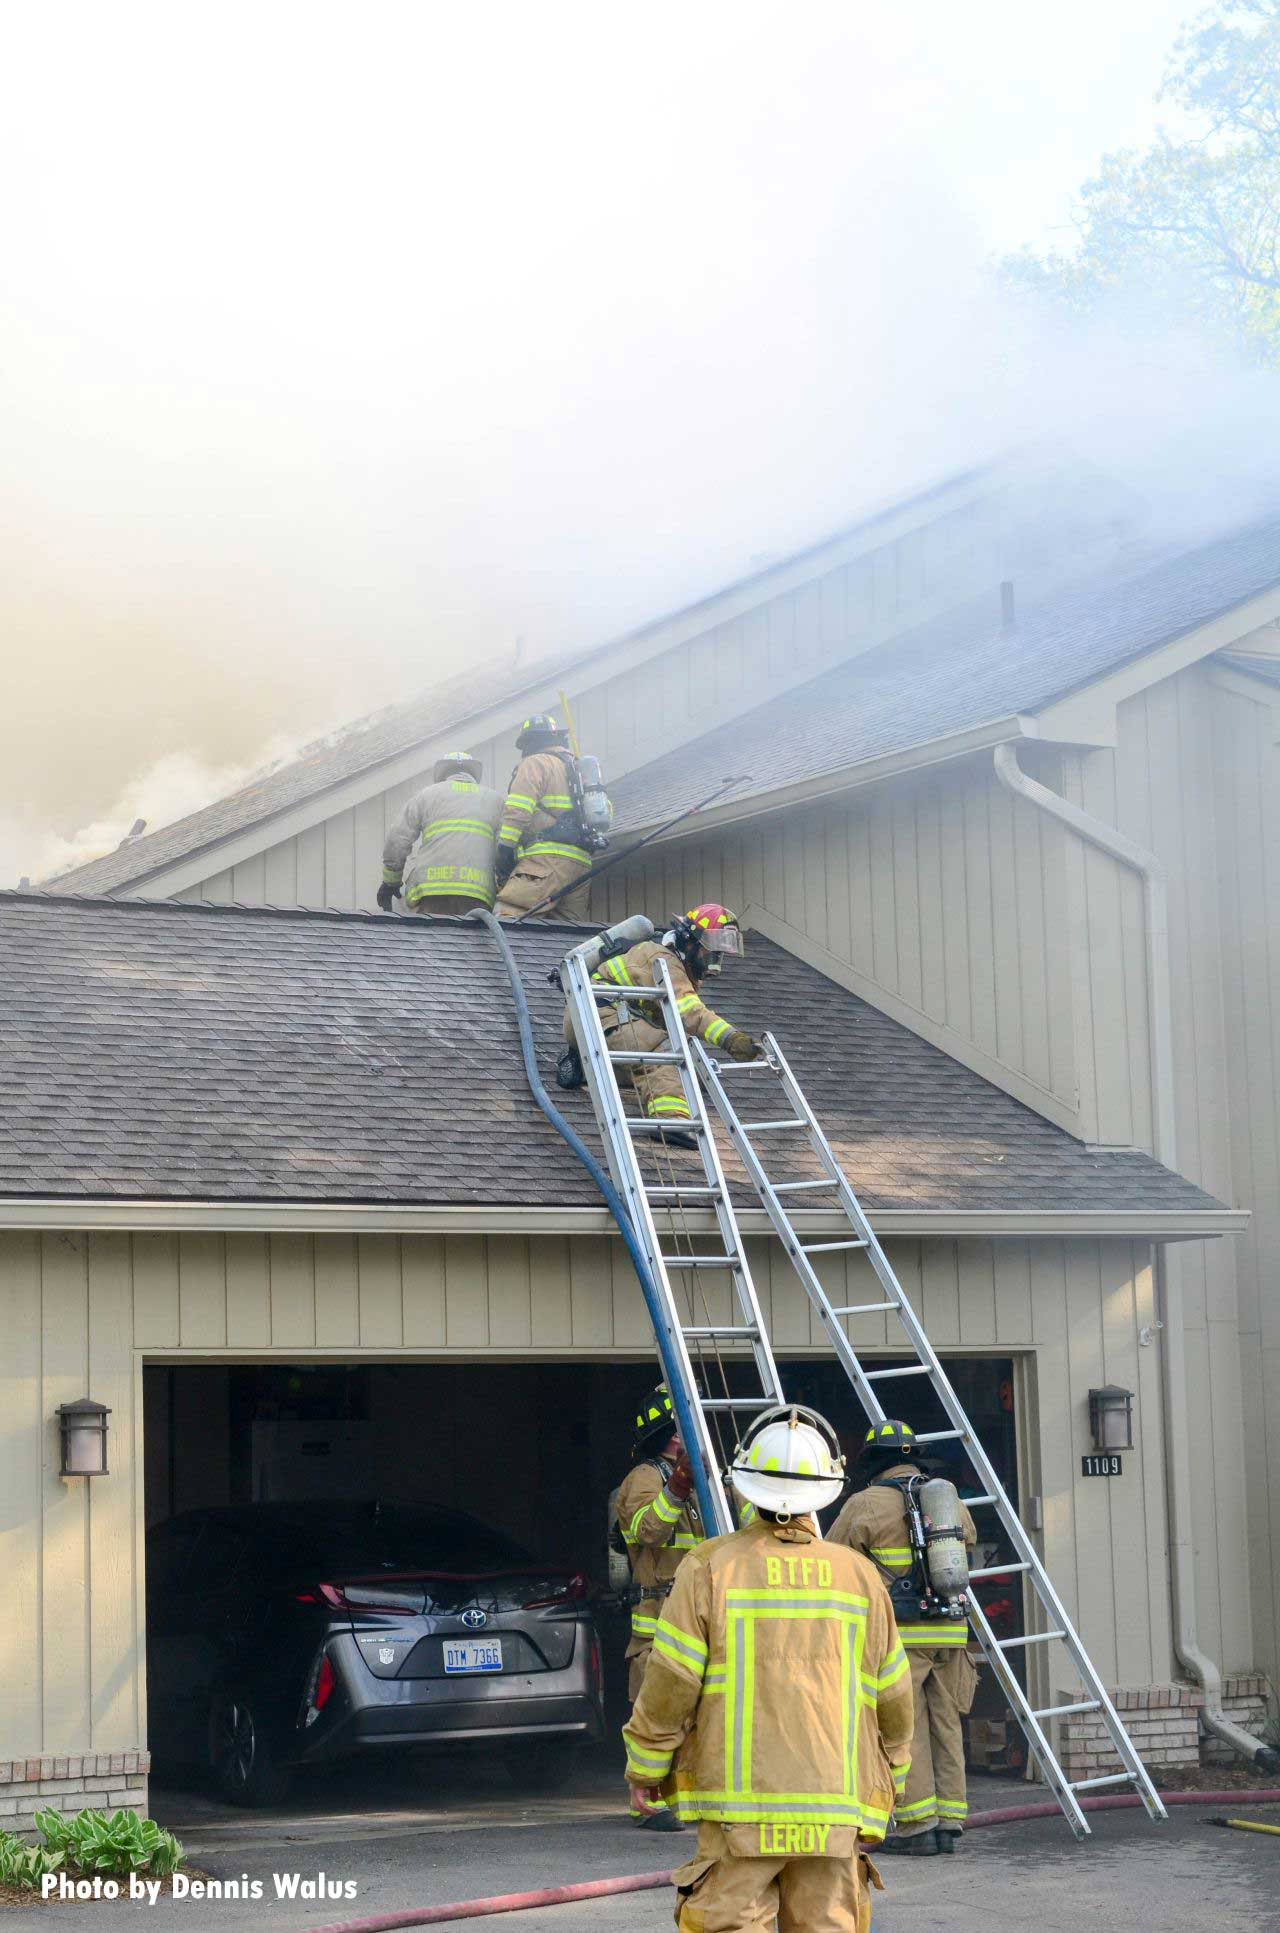 Firefighters raise two ladders at the scene of a fire in Bloomfield, Michigan